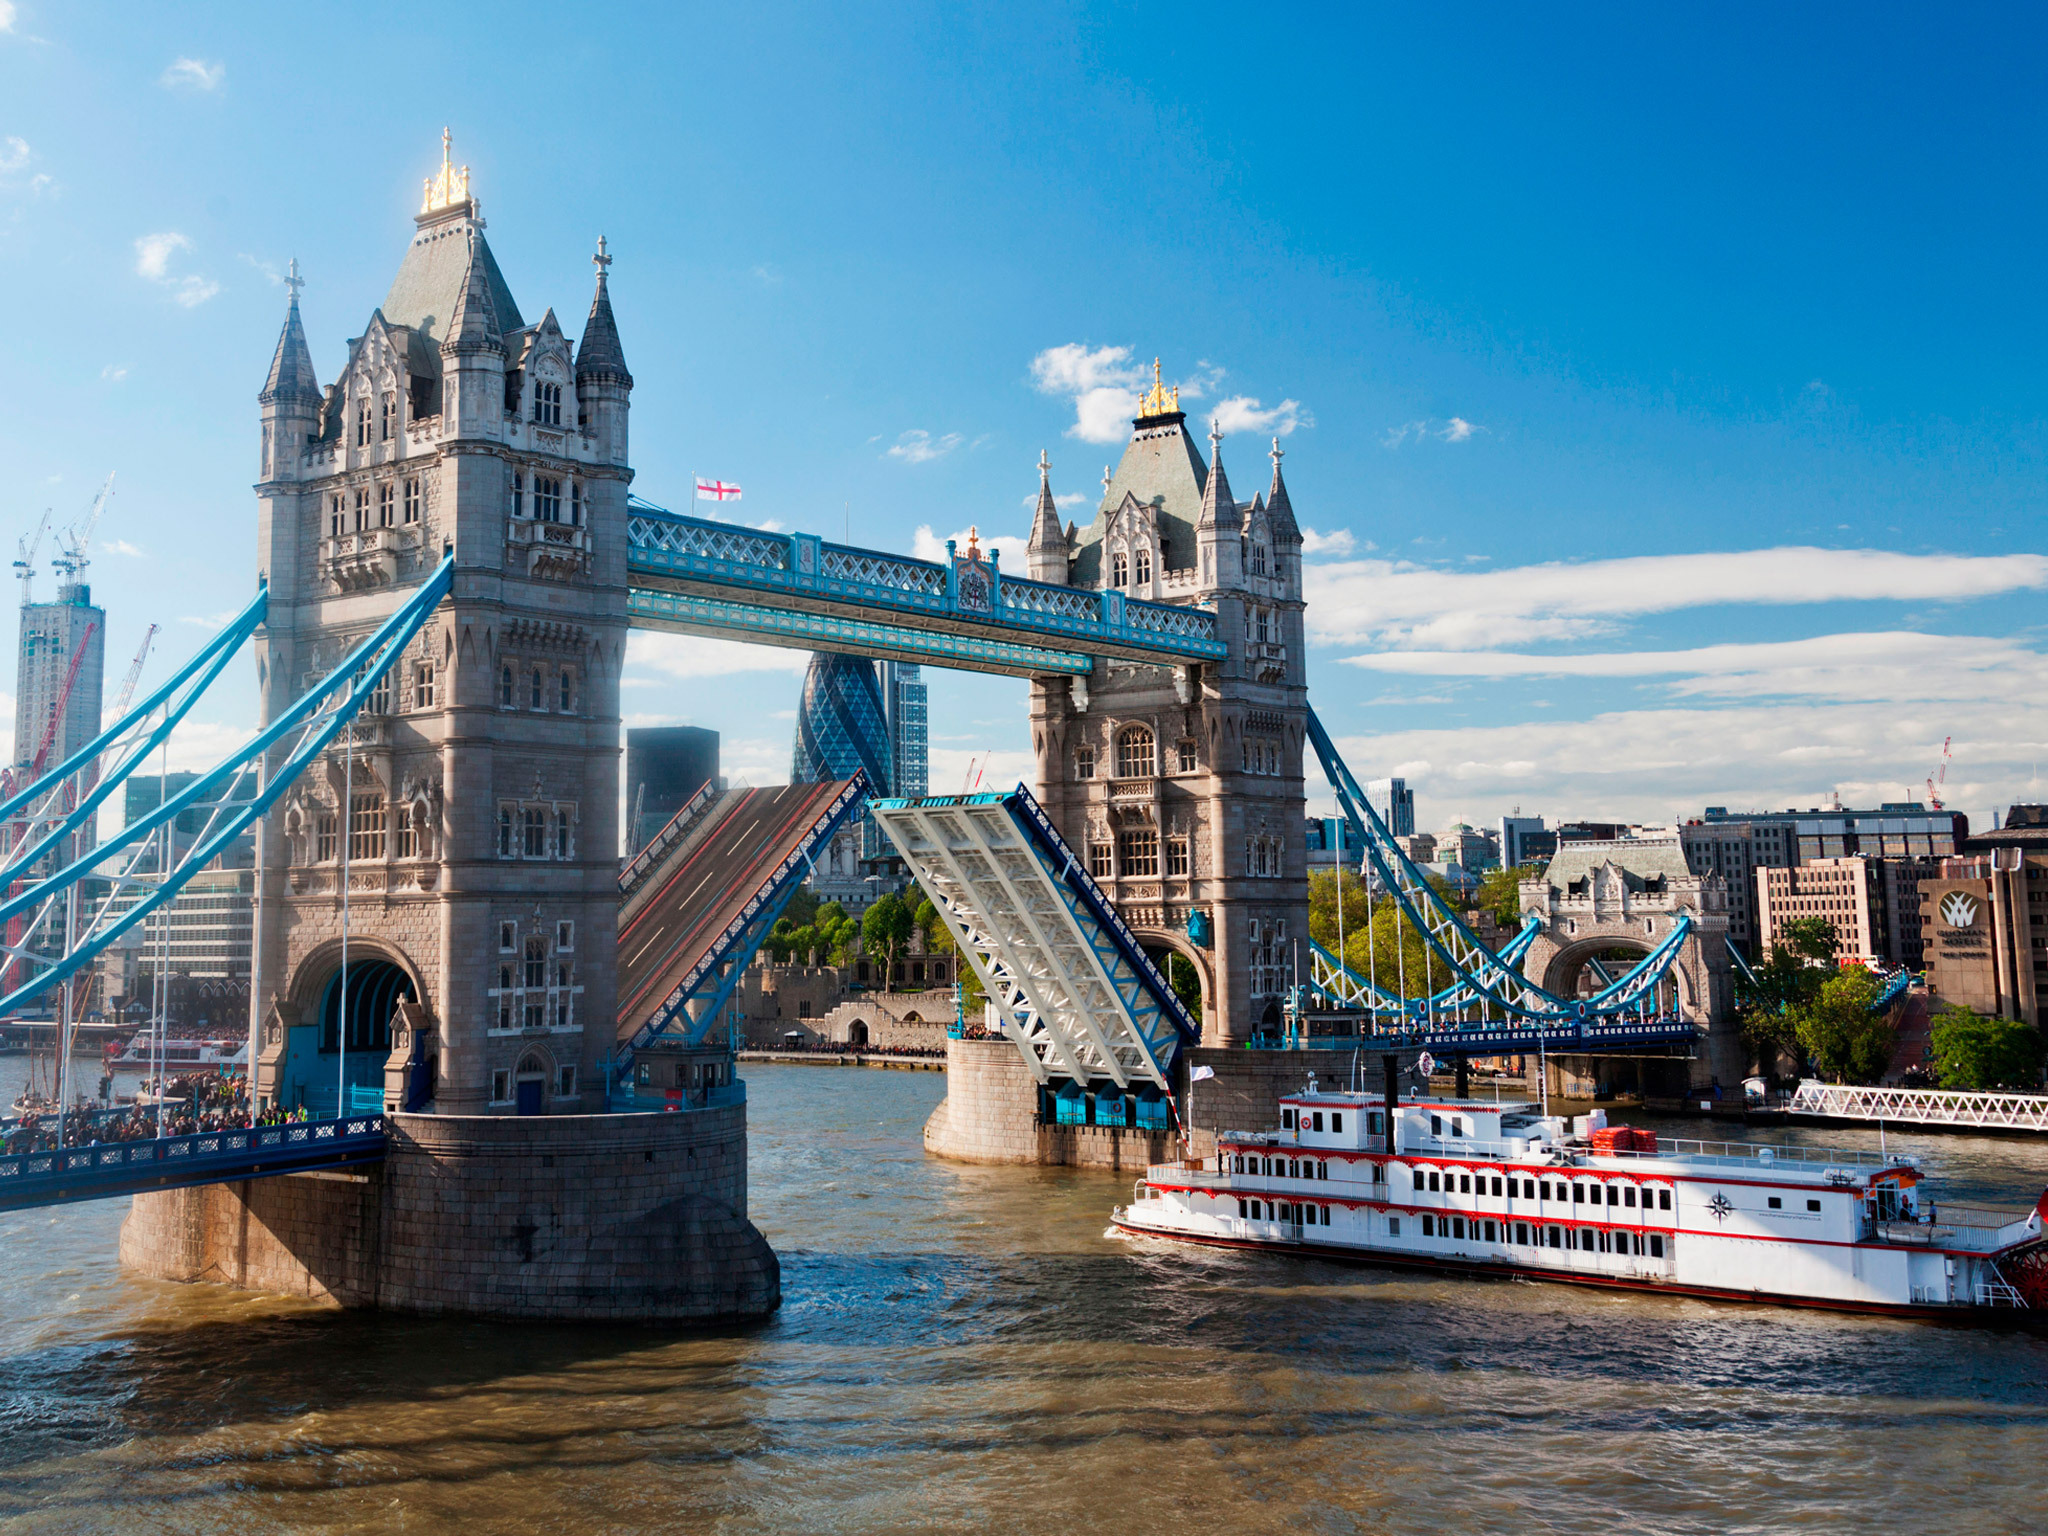 Ever wanted to open Tower Bridge? Here's your chance!